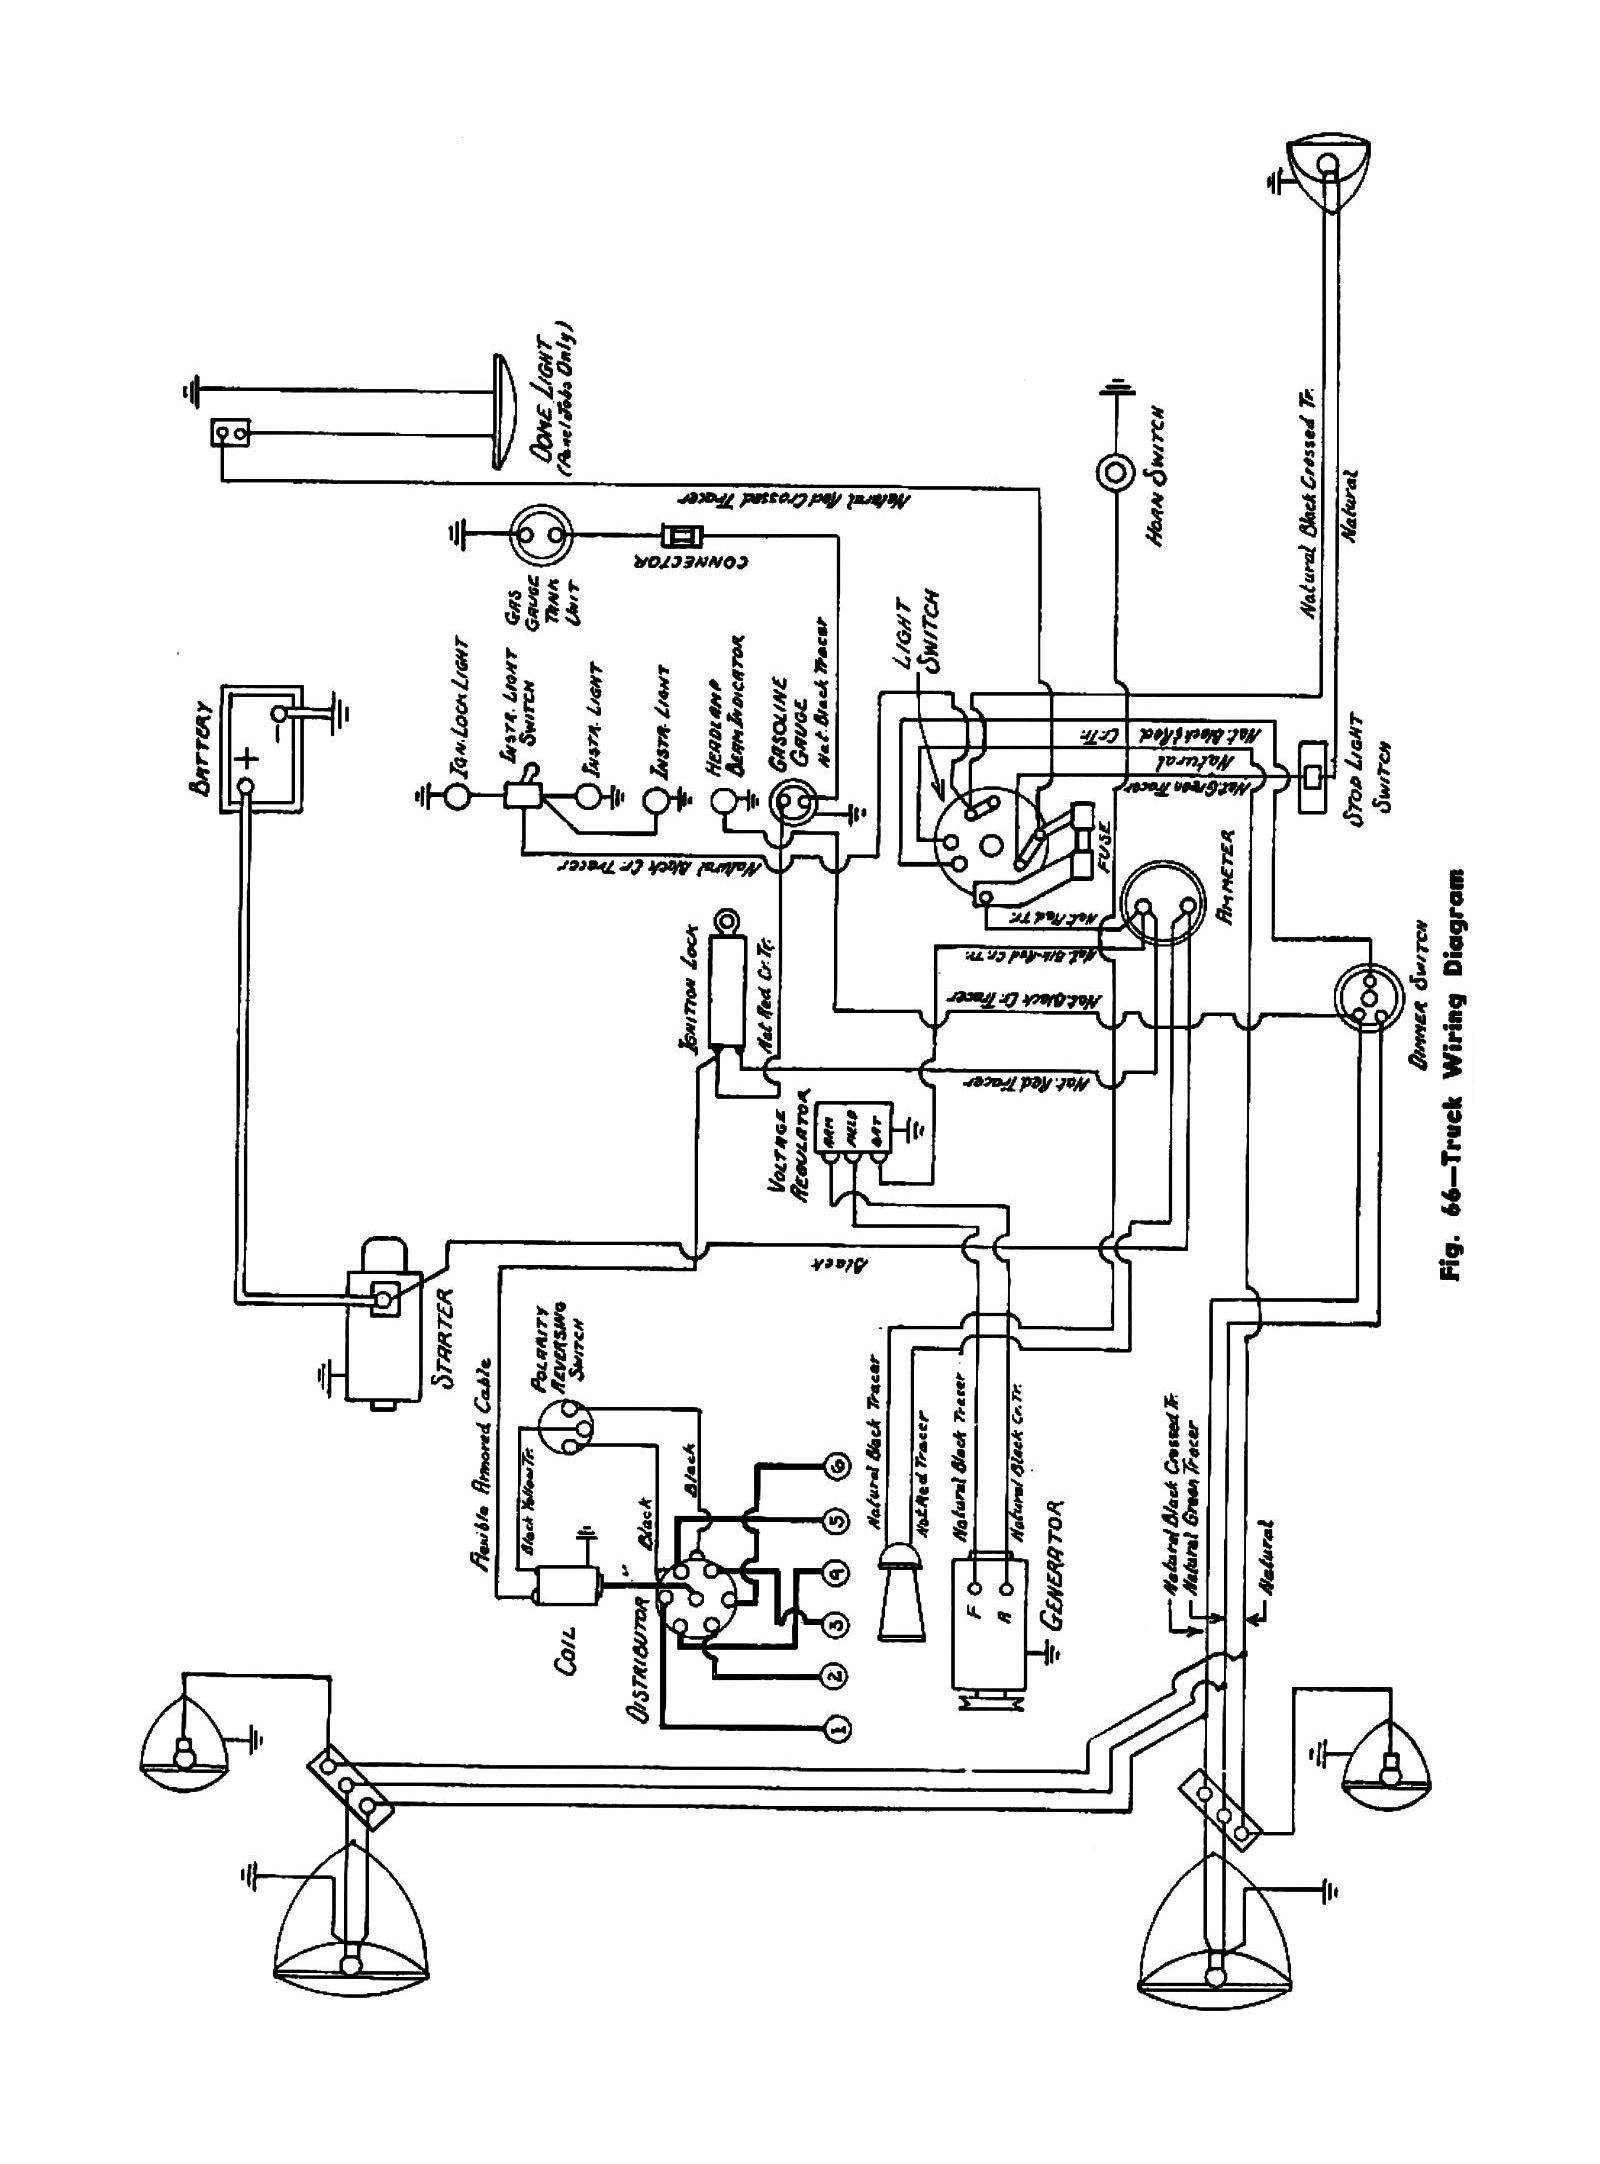 45truck old truck wiring diagram old wiring diagrams instruction truck diagram at bayanpartner.co